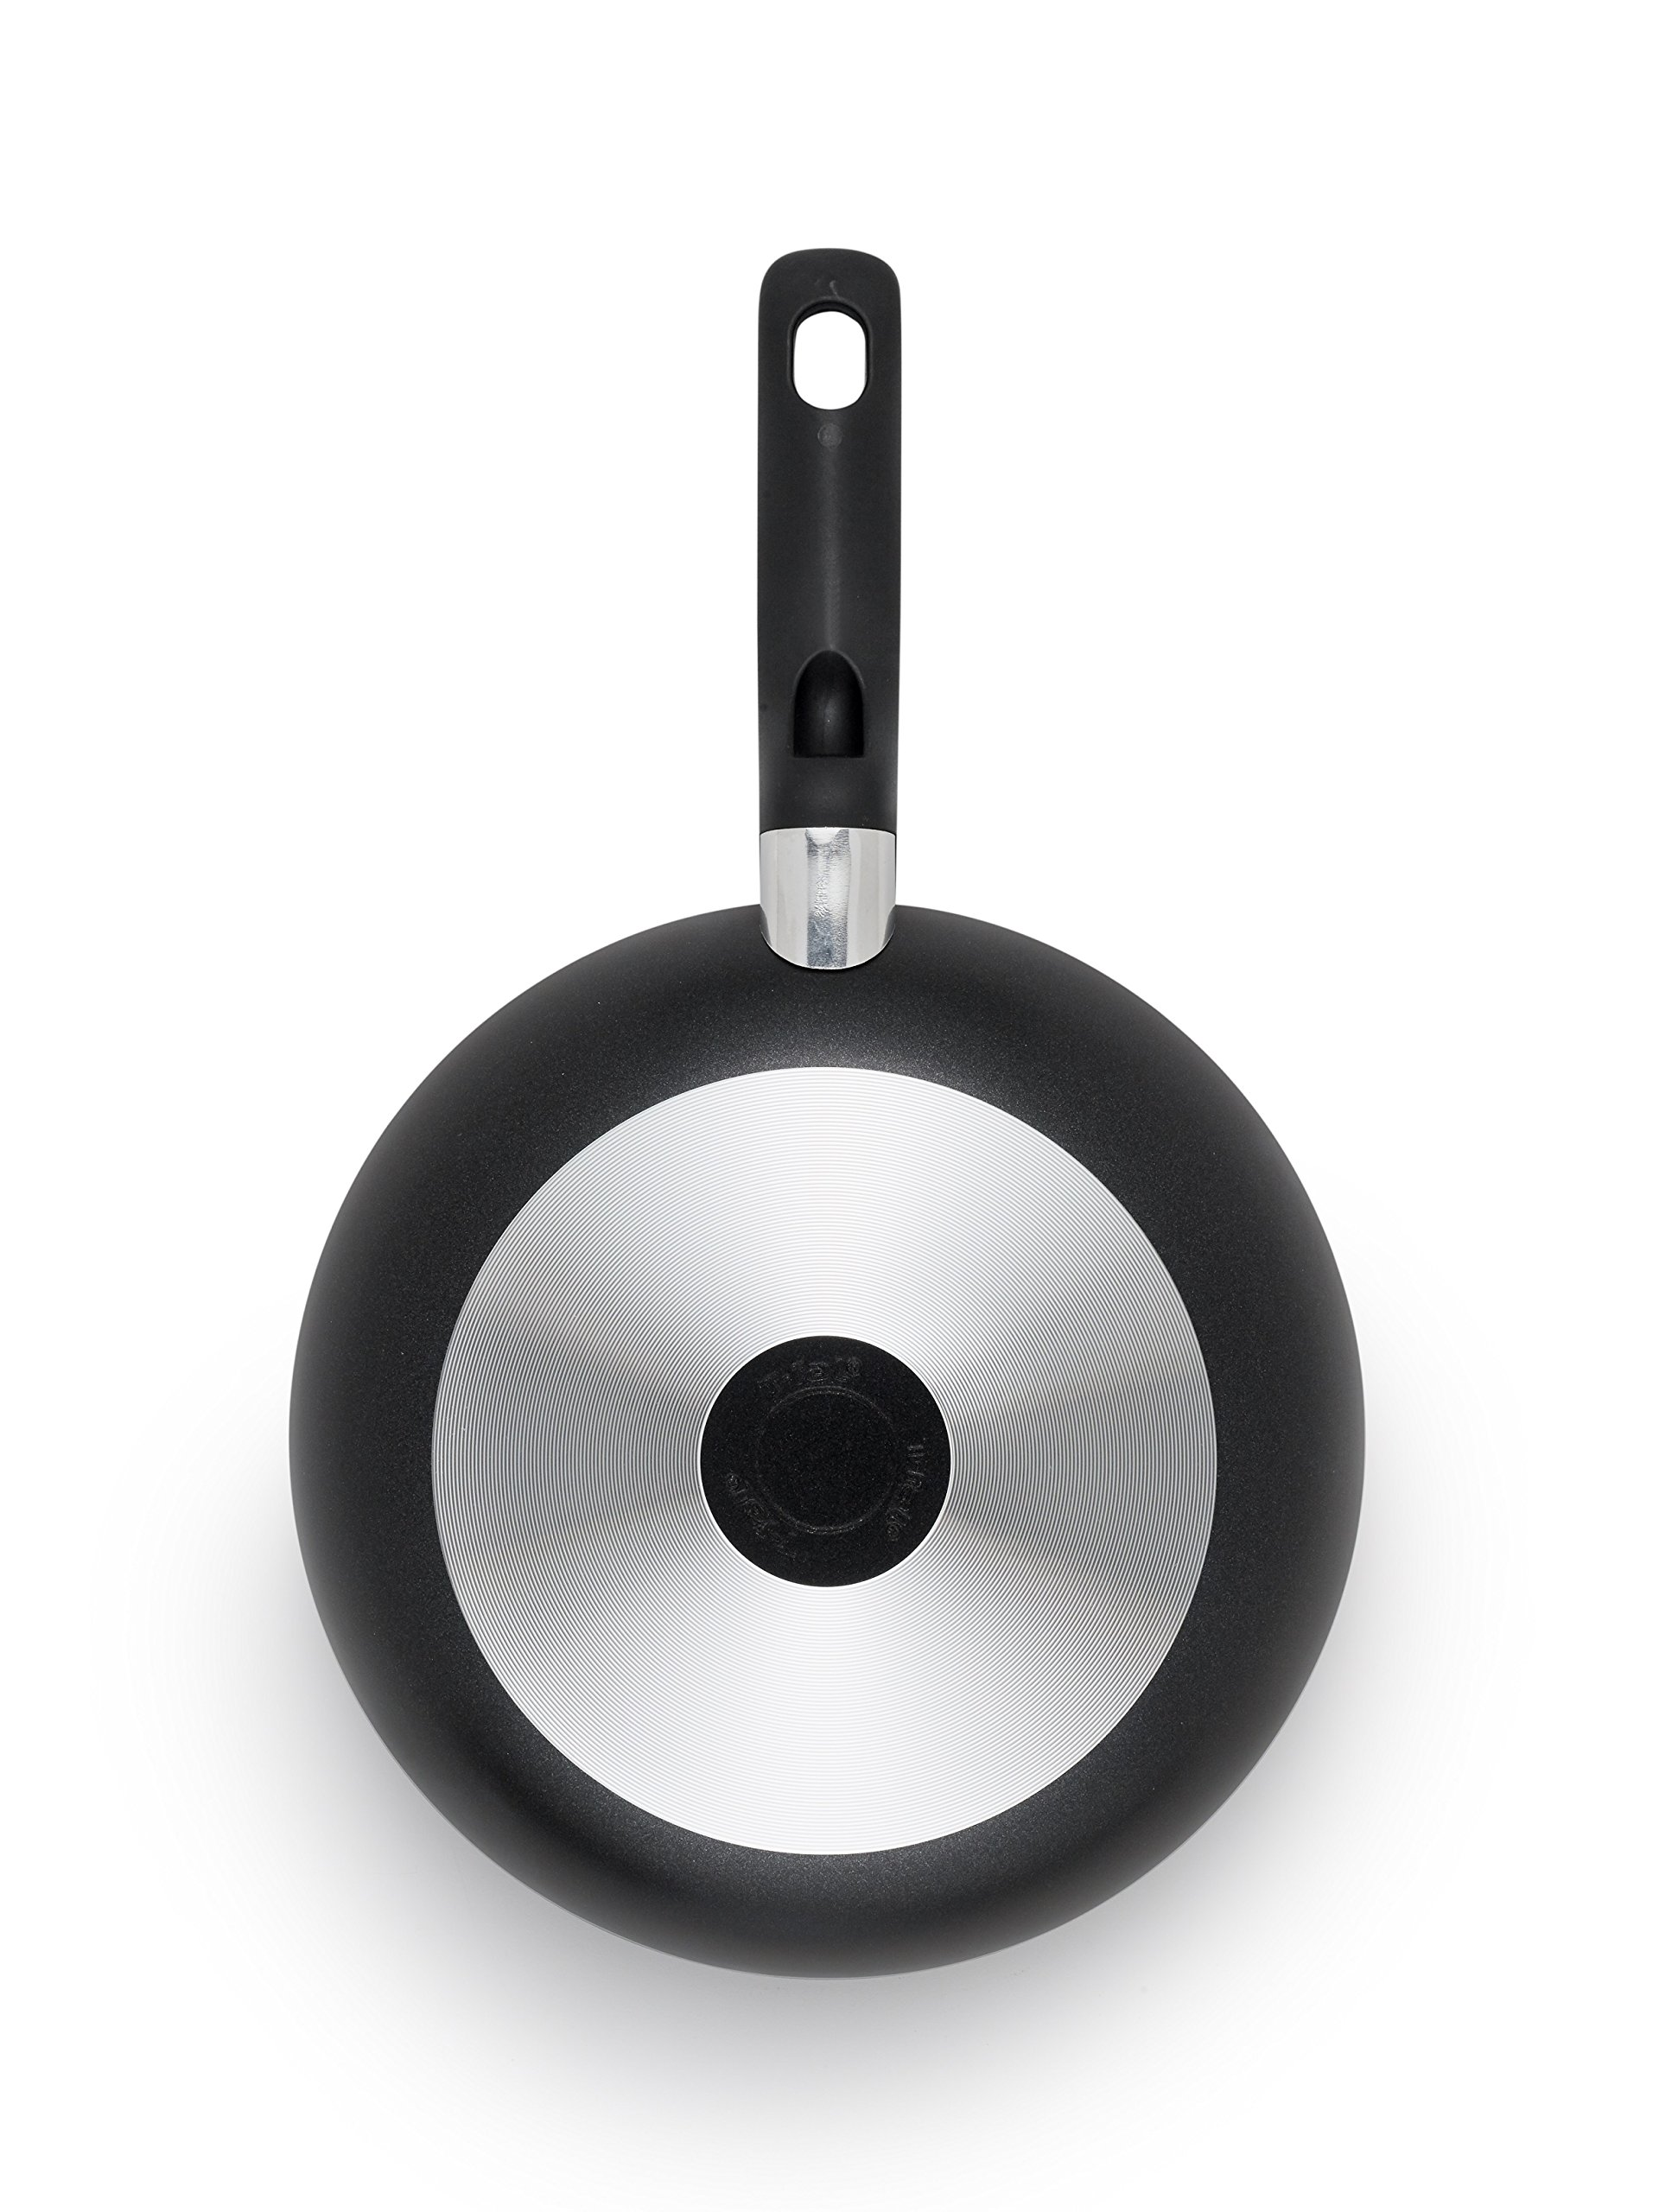 T-fal B363S3 Specialty Nonstick Omelette Pan 8-Inch 9.5-Inch and 11-Inch Dishwasher Safe PFOA Free Fry Pan / Saute Pan Cookware Set, 3-Piece, Gray by T-fal (Image #8)